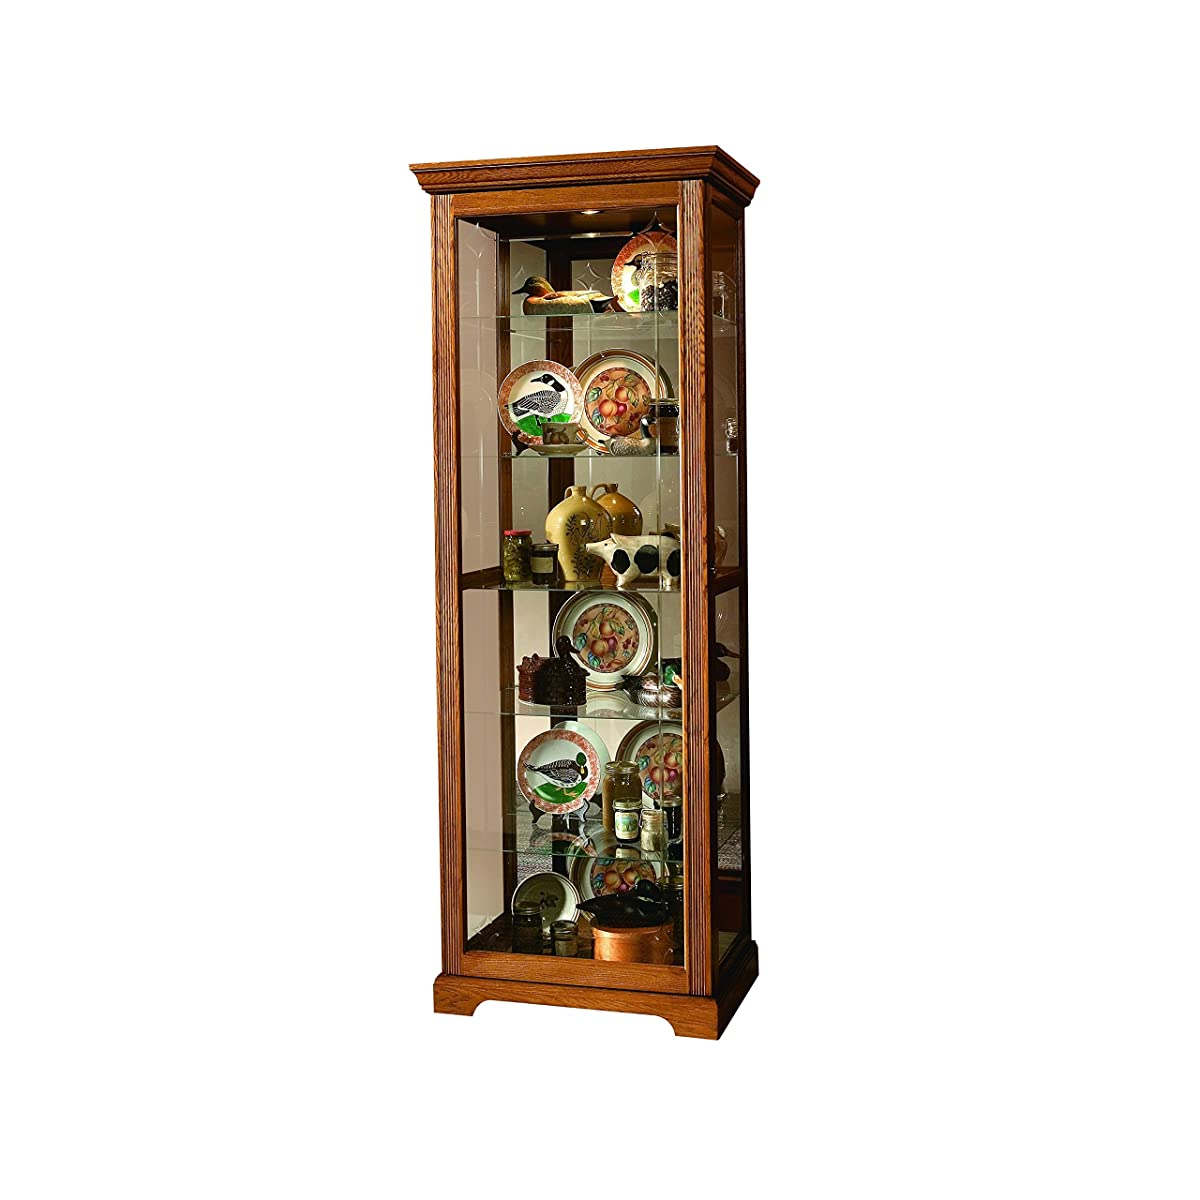 Sofaweb.com Golden Oak Finish Two-Way Sliding Door Curio Cabinet